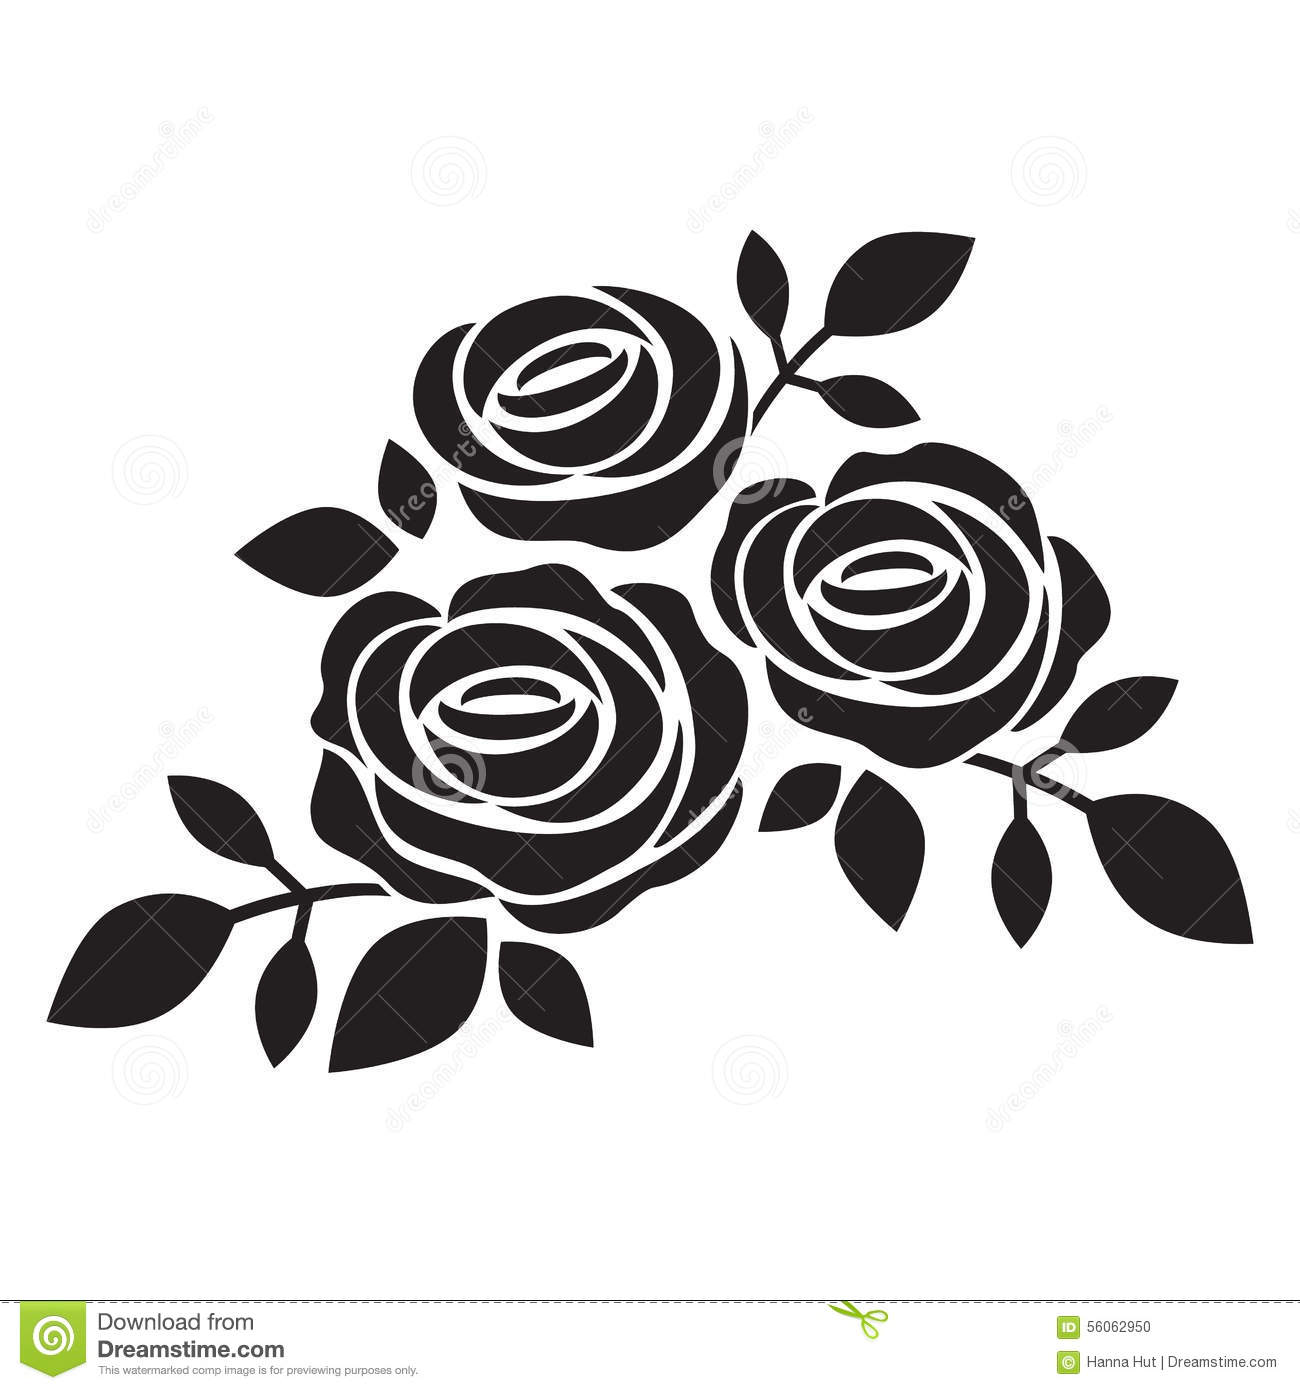 Black And White Rose Silhouette Pictures to Pin on ...